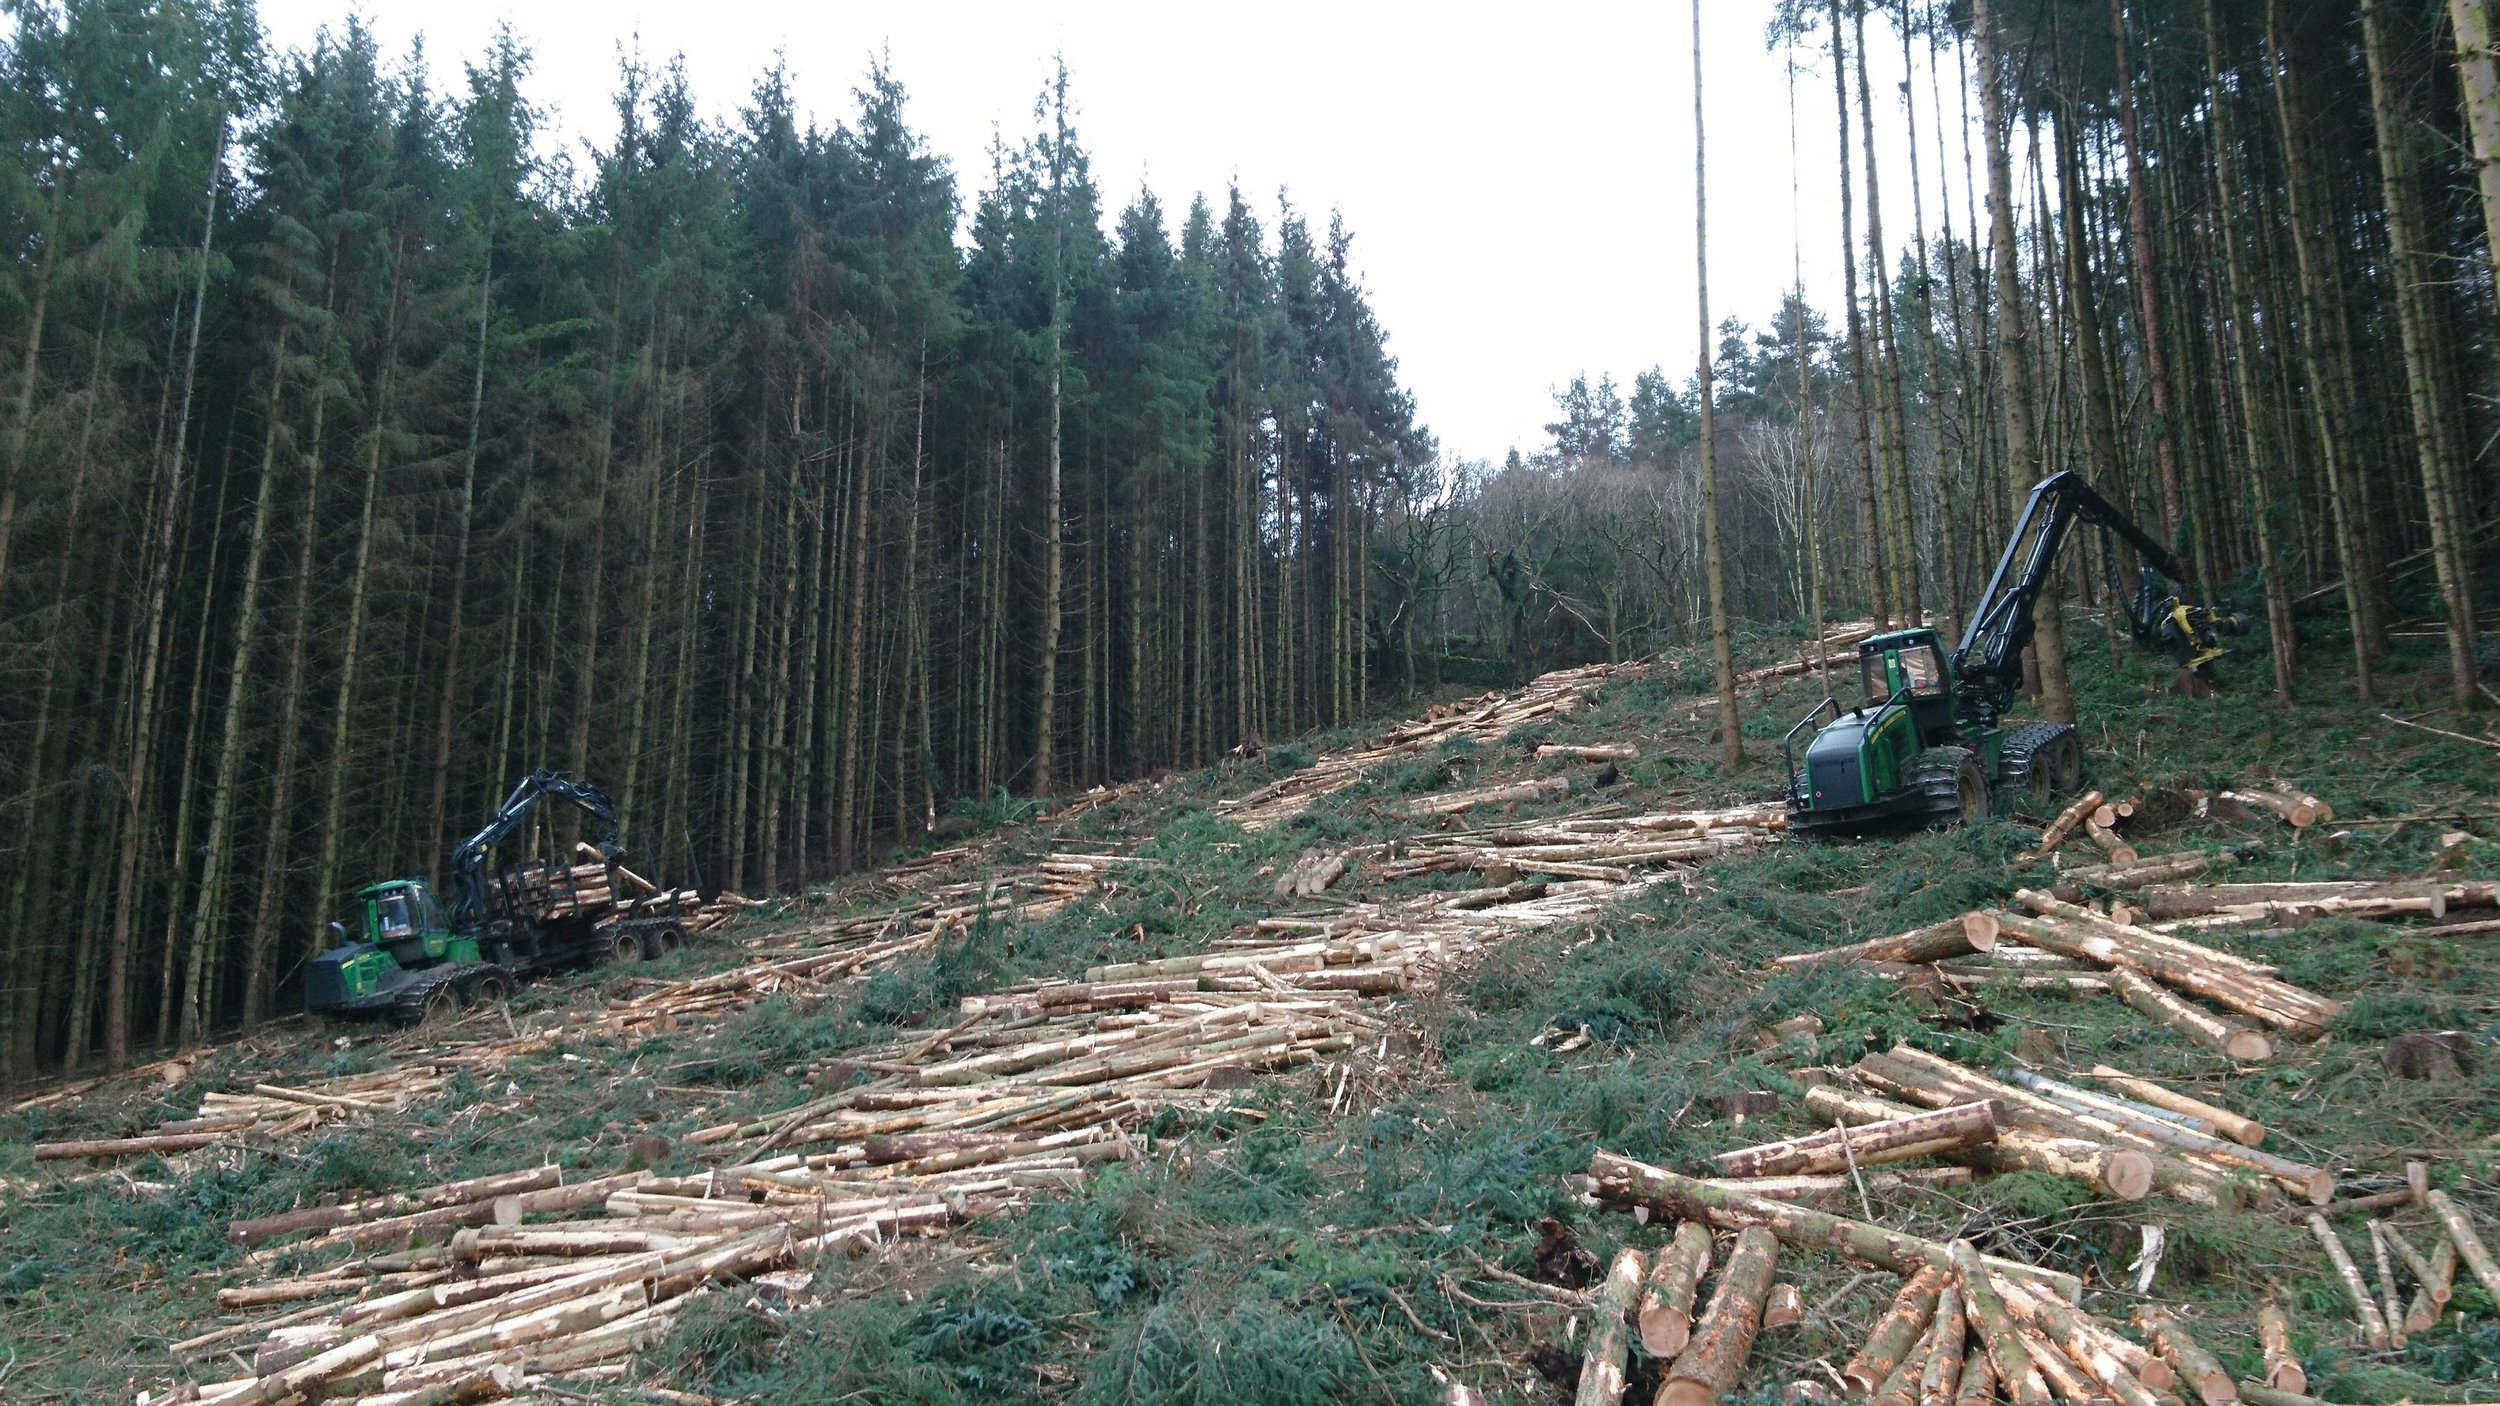 wORK IN PROGRESS ON A RECENT 3,500 TONNE CLEAR FELL IN THE SCOTTISH BORDERS